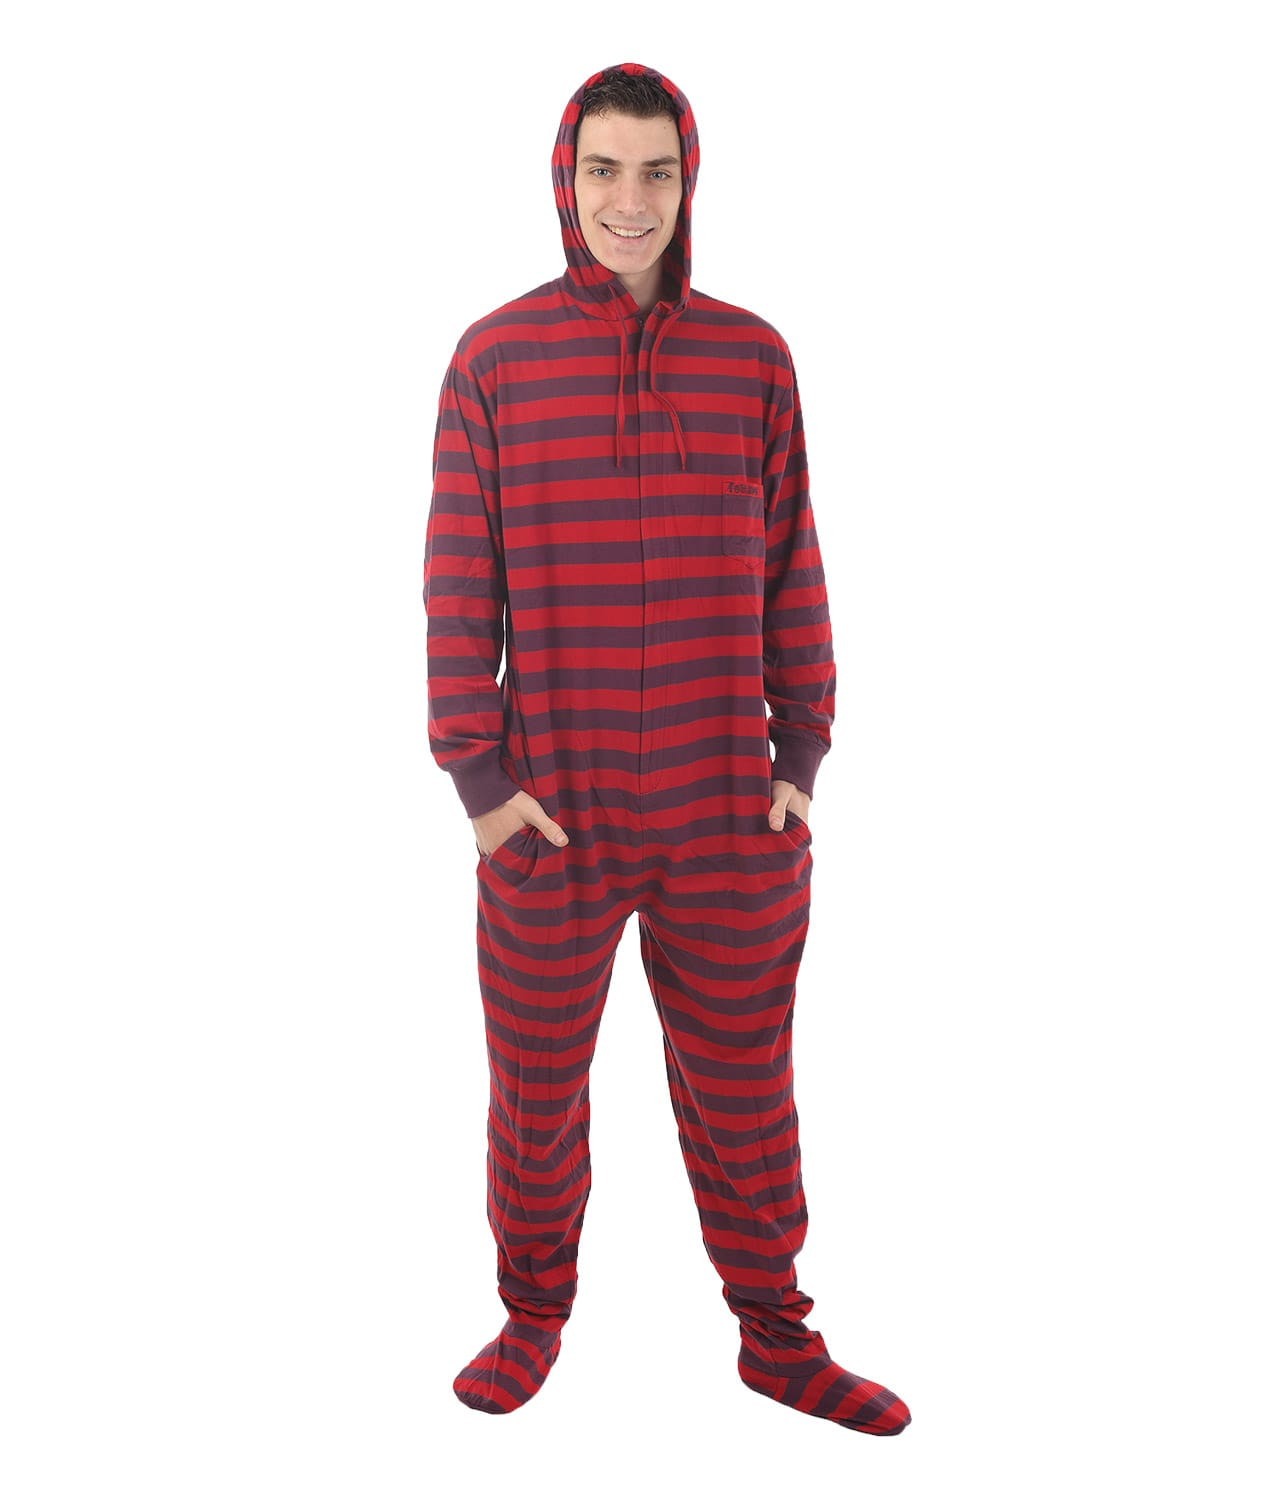 cb83a98ffa96 Retro Footed Pajama Suit - Stripy Fun